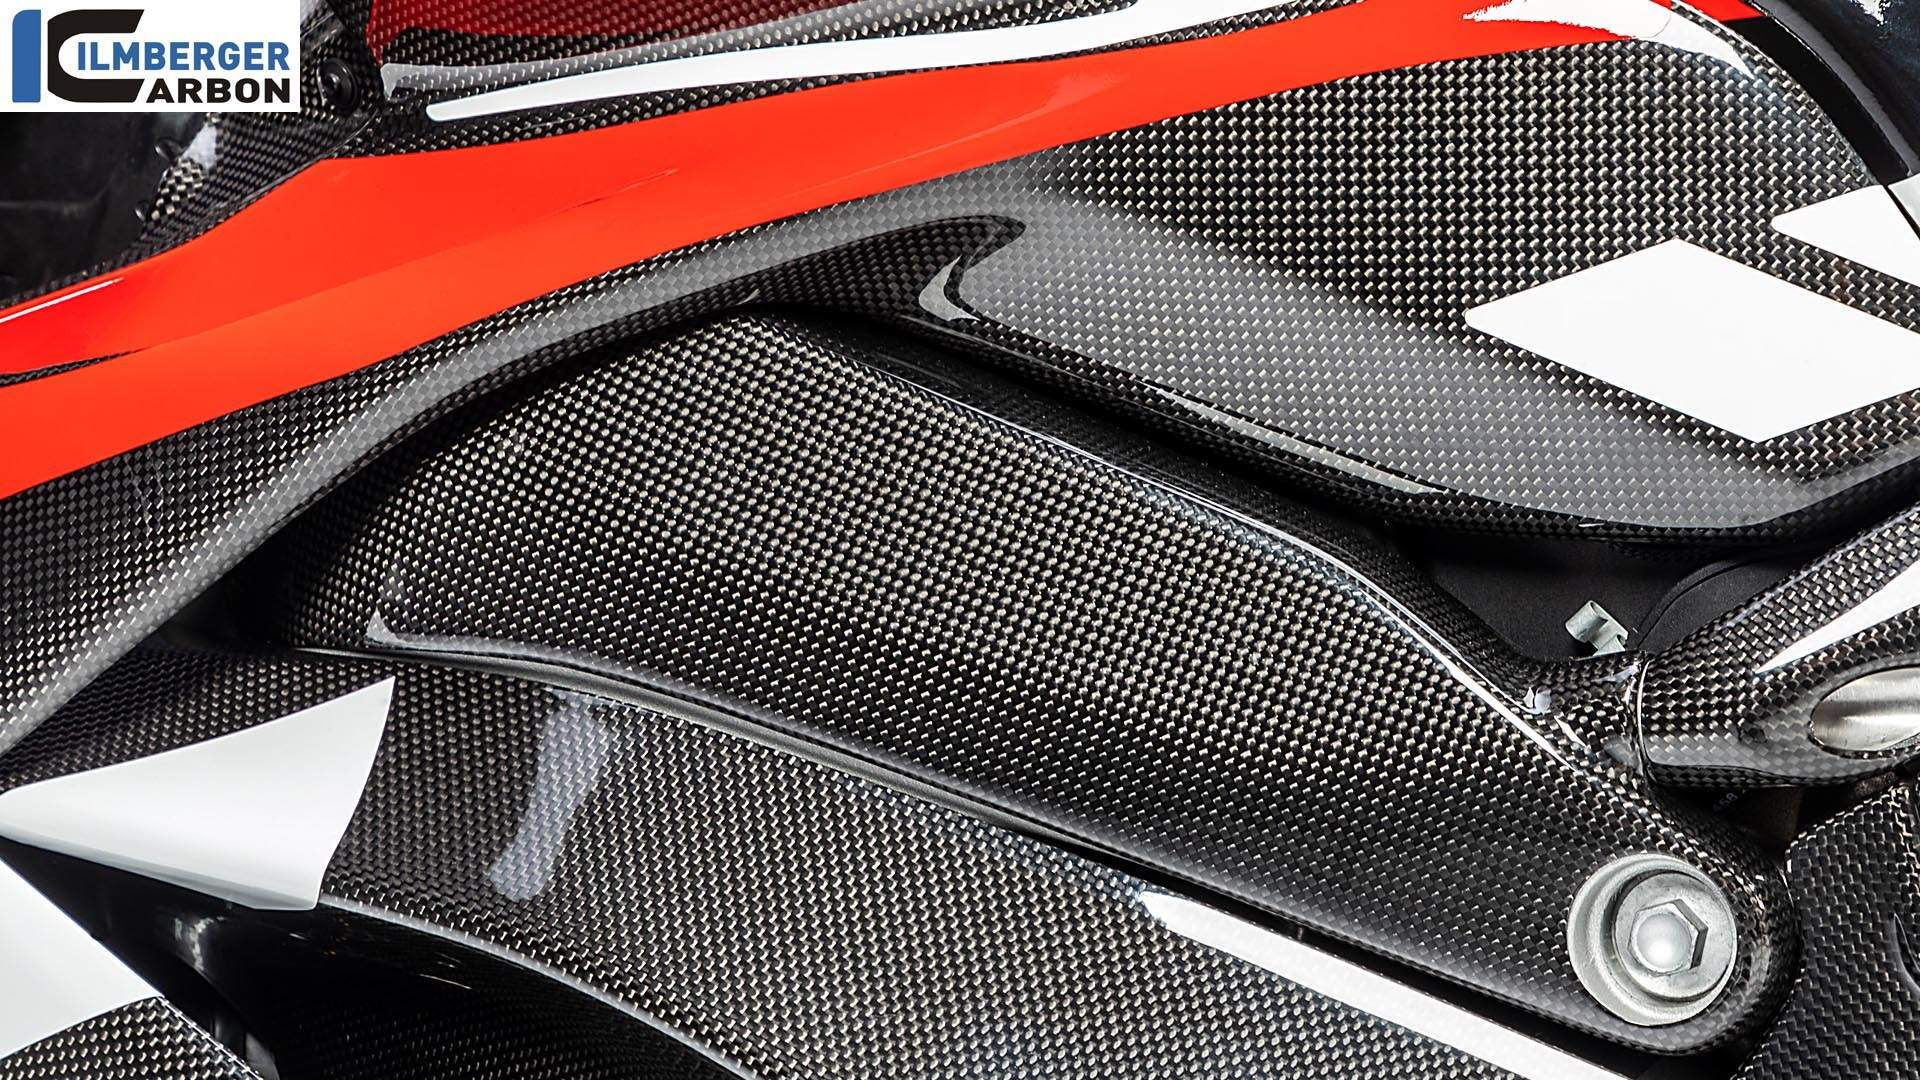 Ilmberger Carbon Gives Ducati Panigale V4 Carbon Treatment